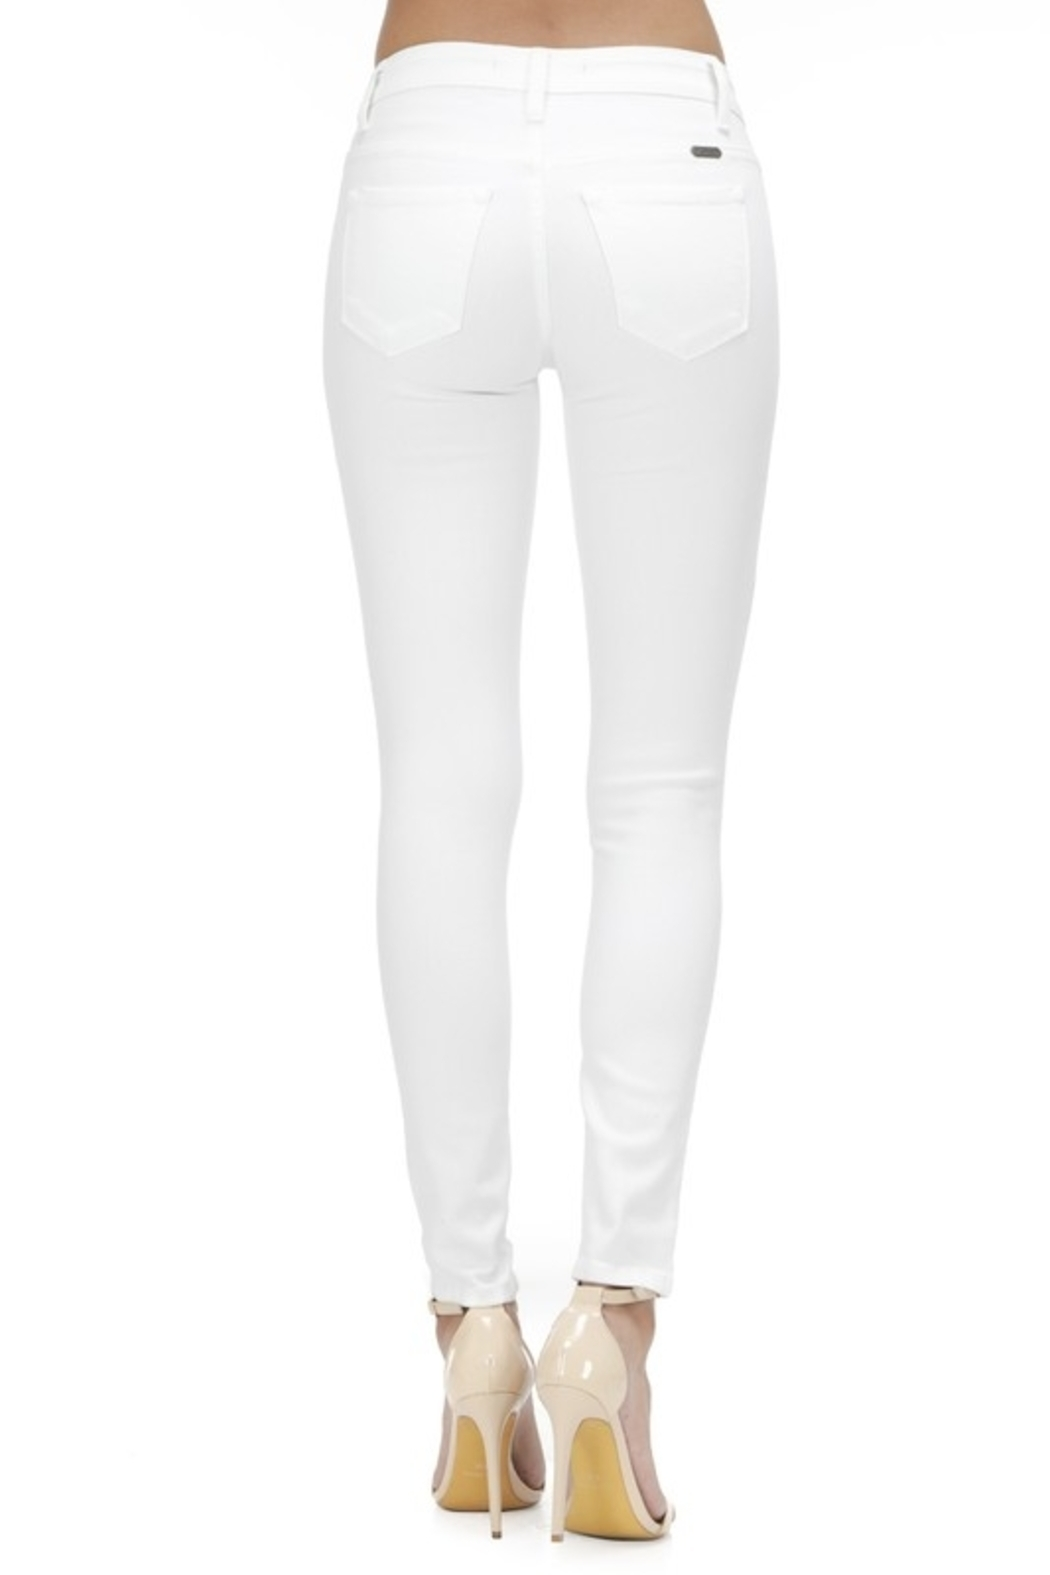 KanCan Mid Rise Ankle Skinny jean (KC7085WT) - Front Full Image